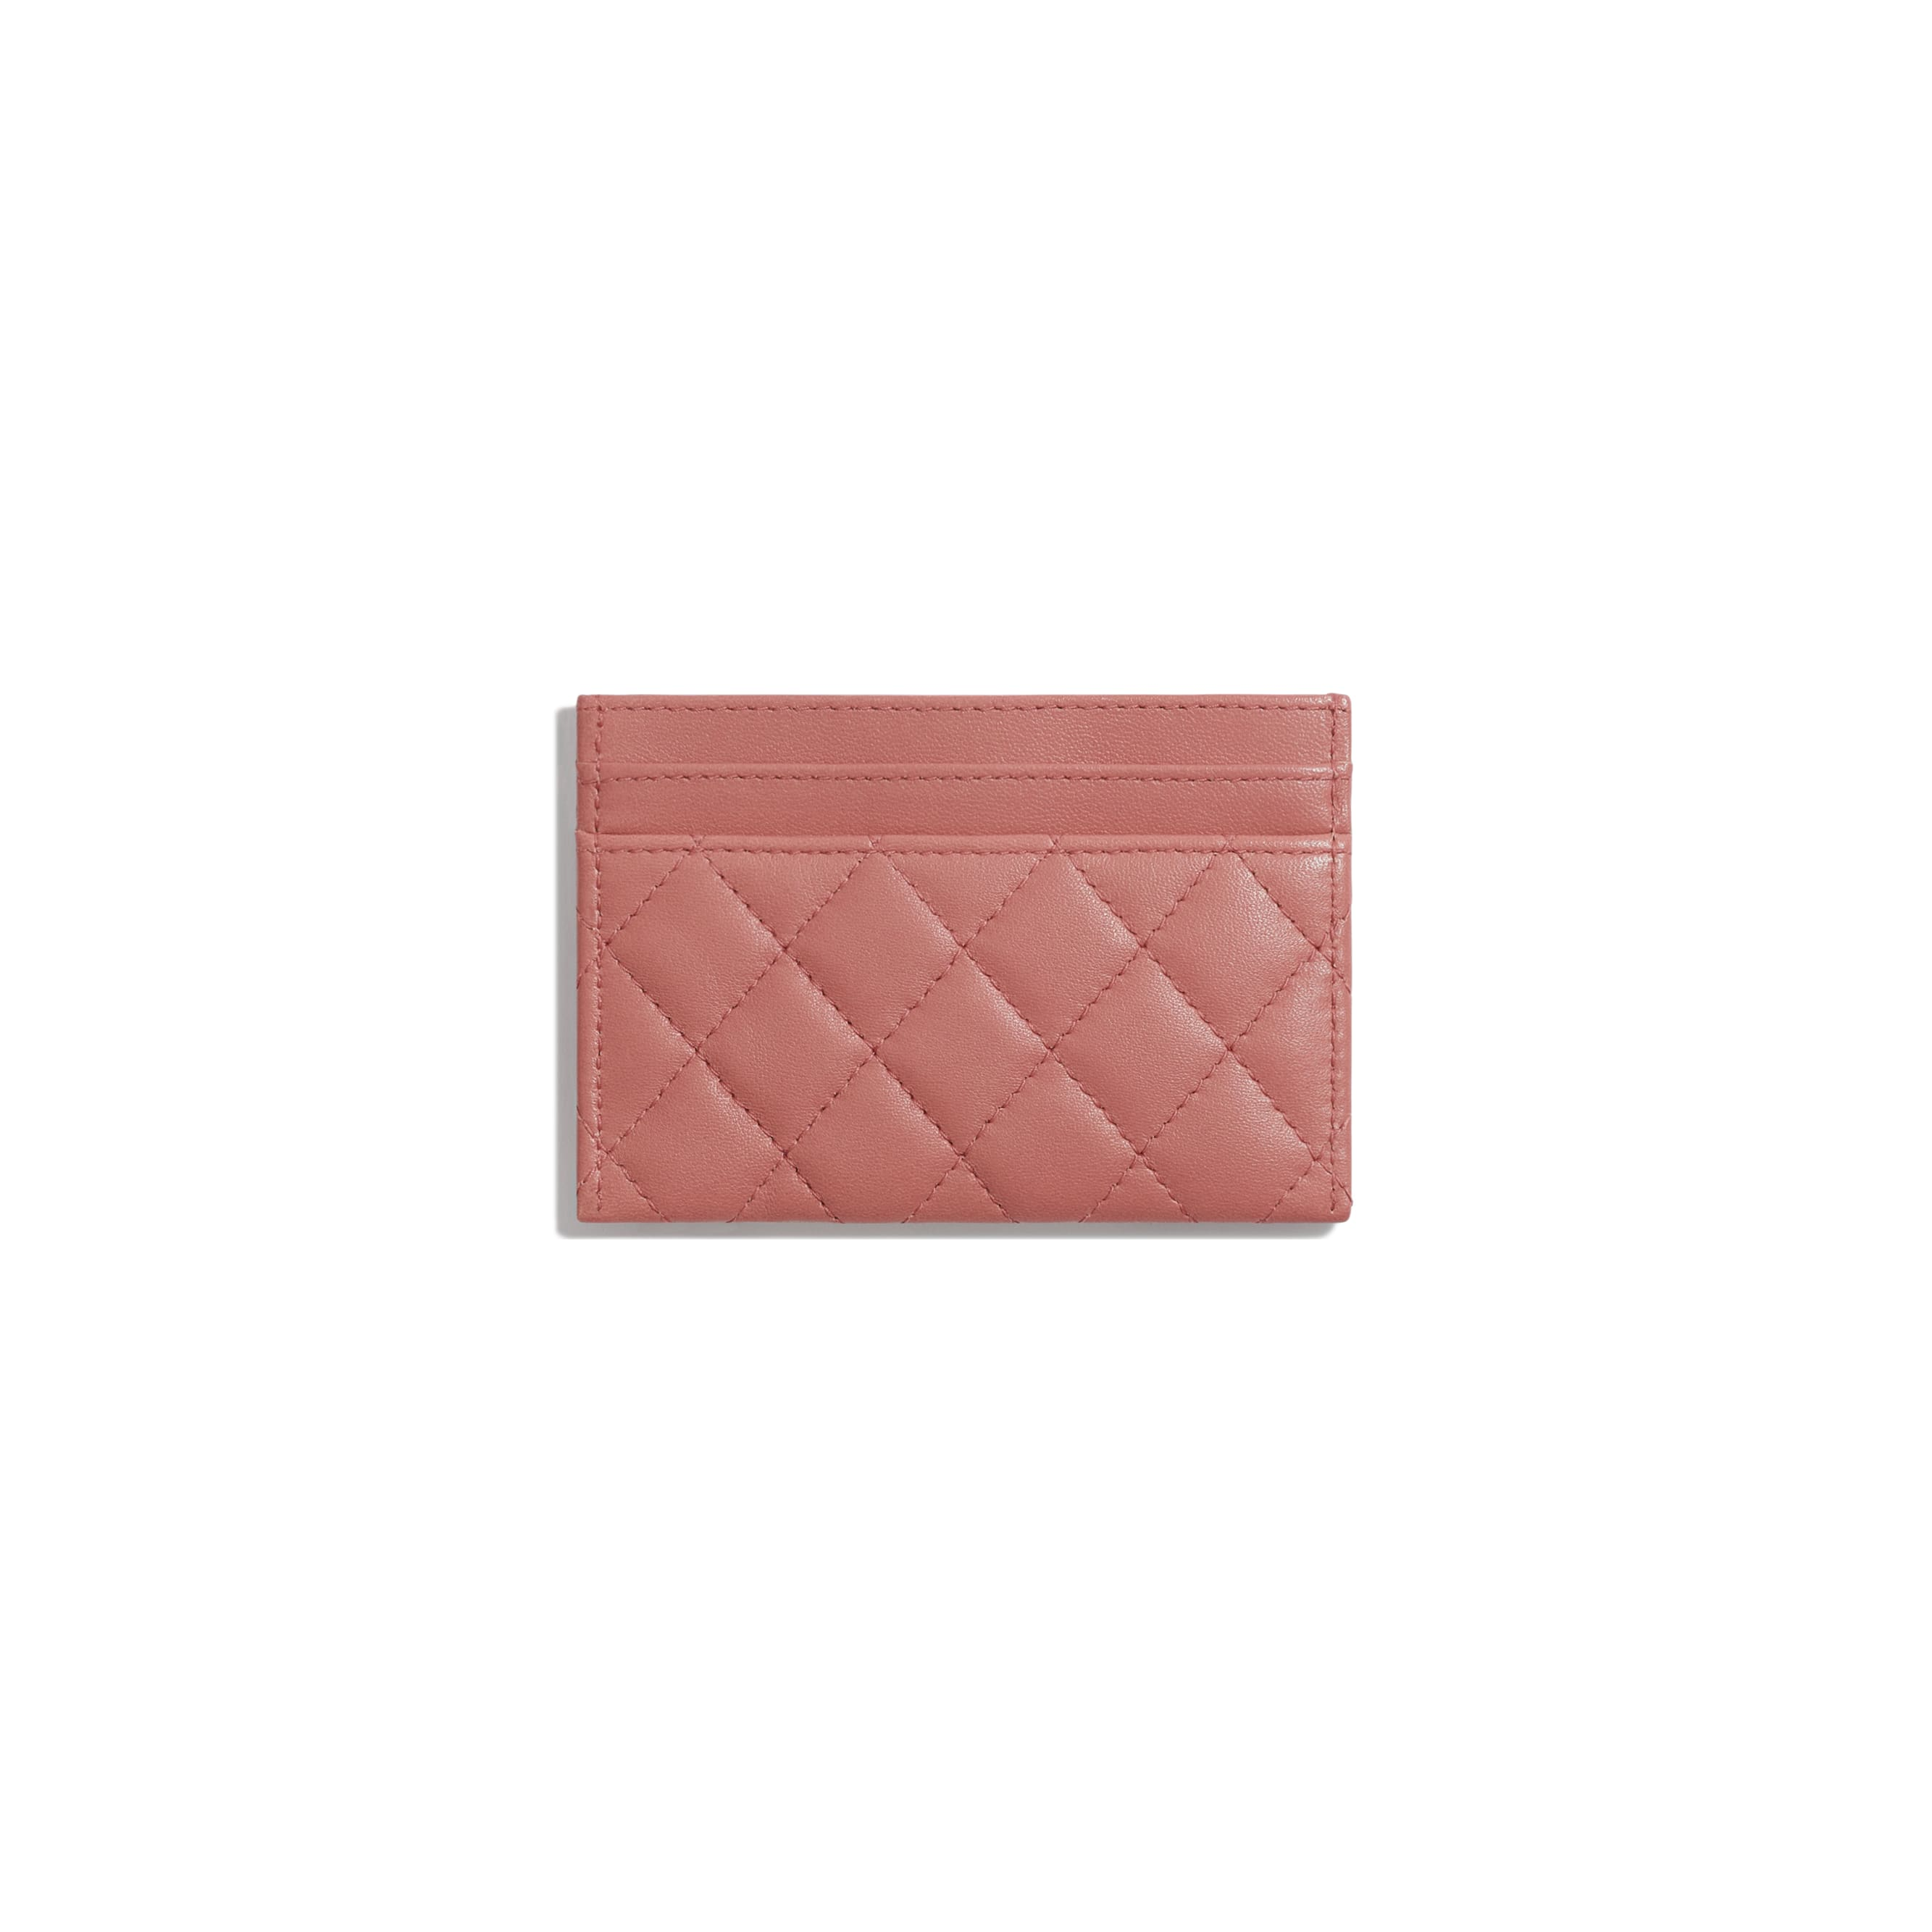 BOY CHANEL Card Holder - Pink - Lambskin - Alternative view - see standard sized version